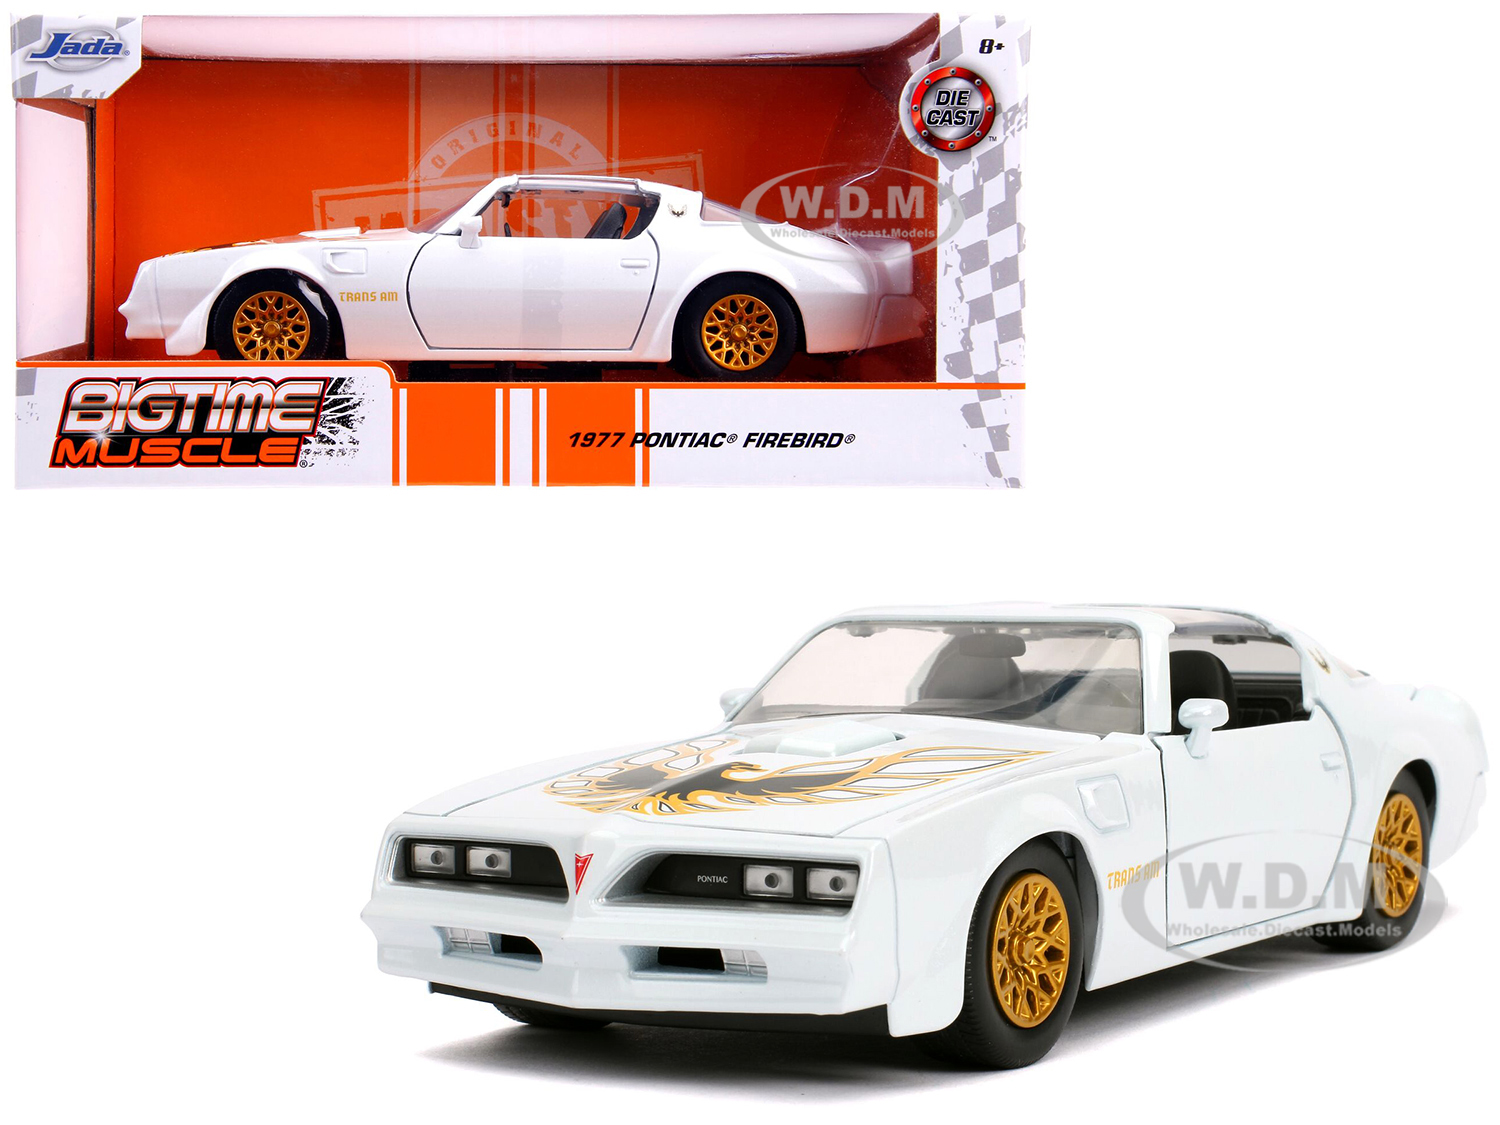 1977 Pontiac Firebird Trans Am Pearl White with Gold Wheels Bigtime Muscle 1/24 Diecast Model Car by Jada - from $15.99